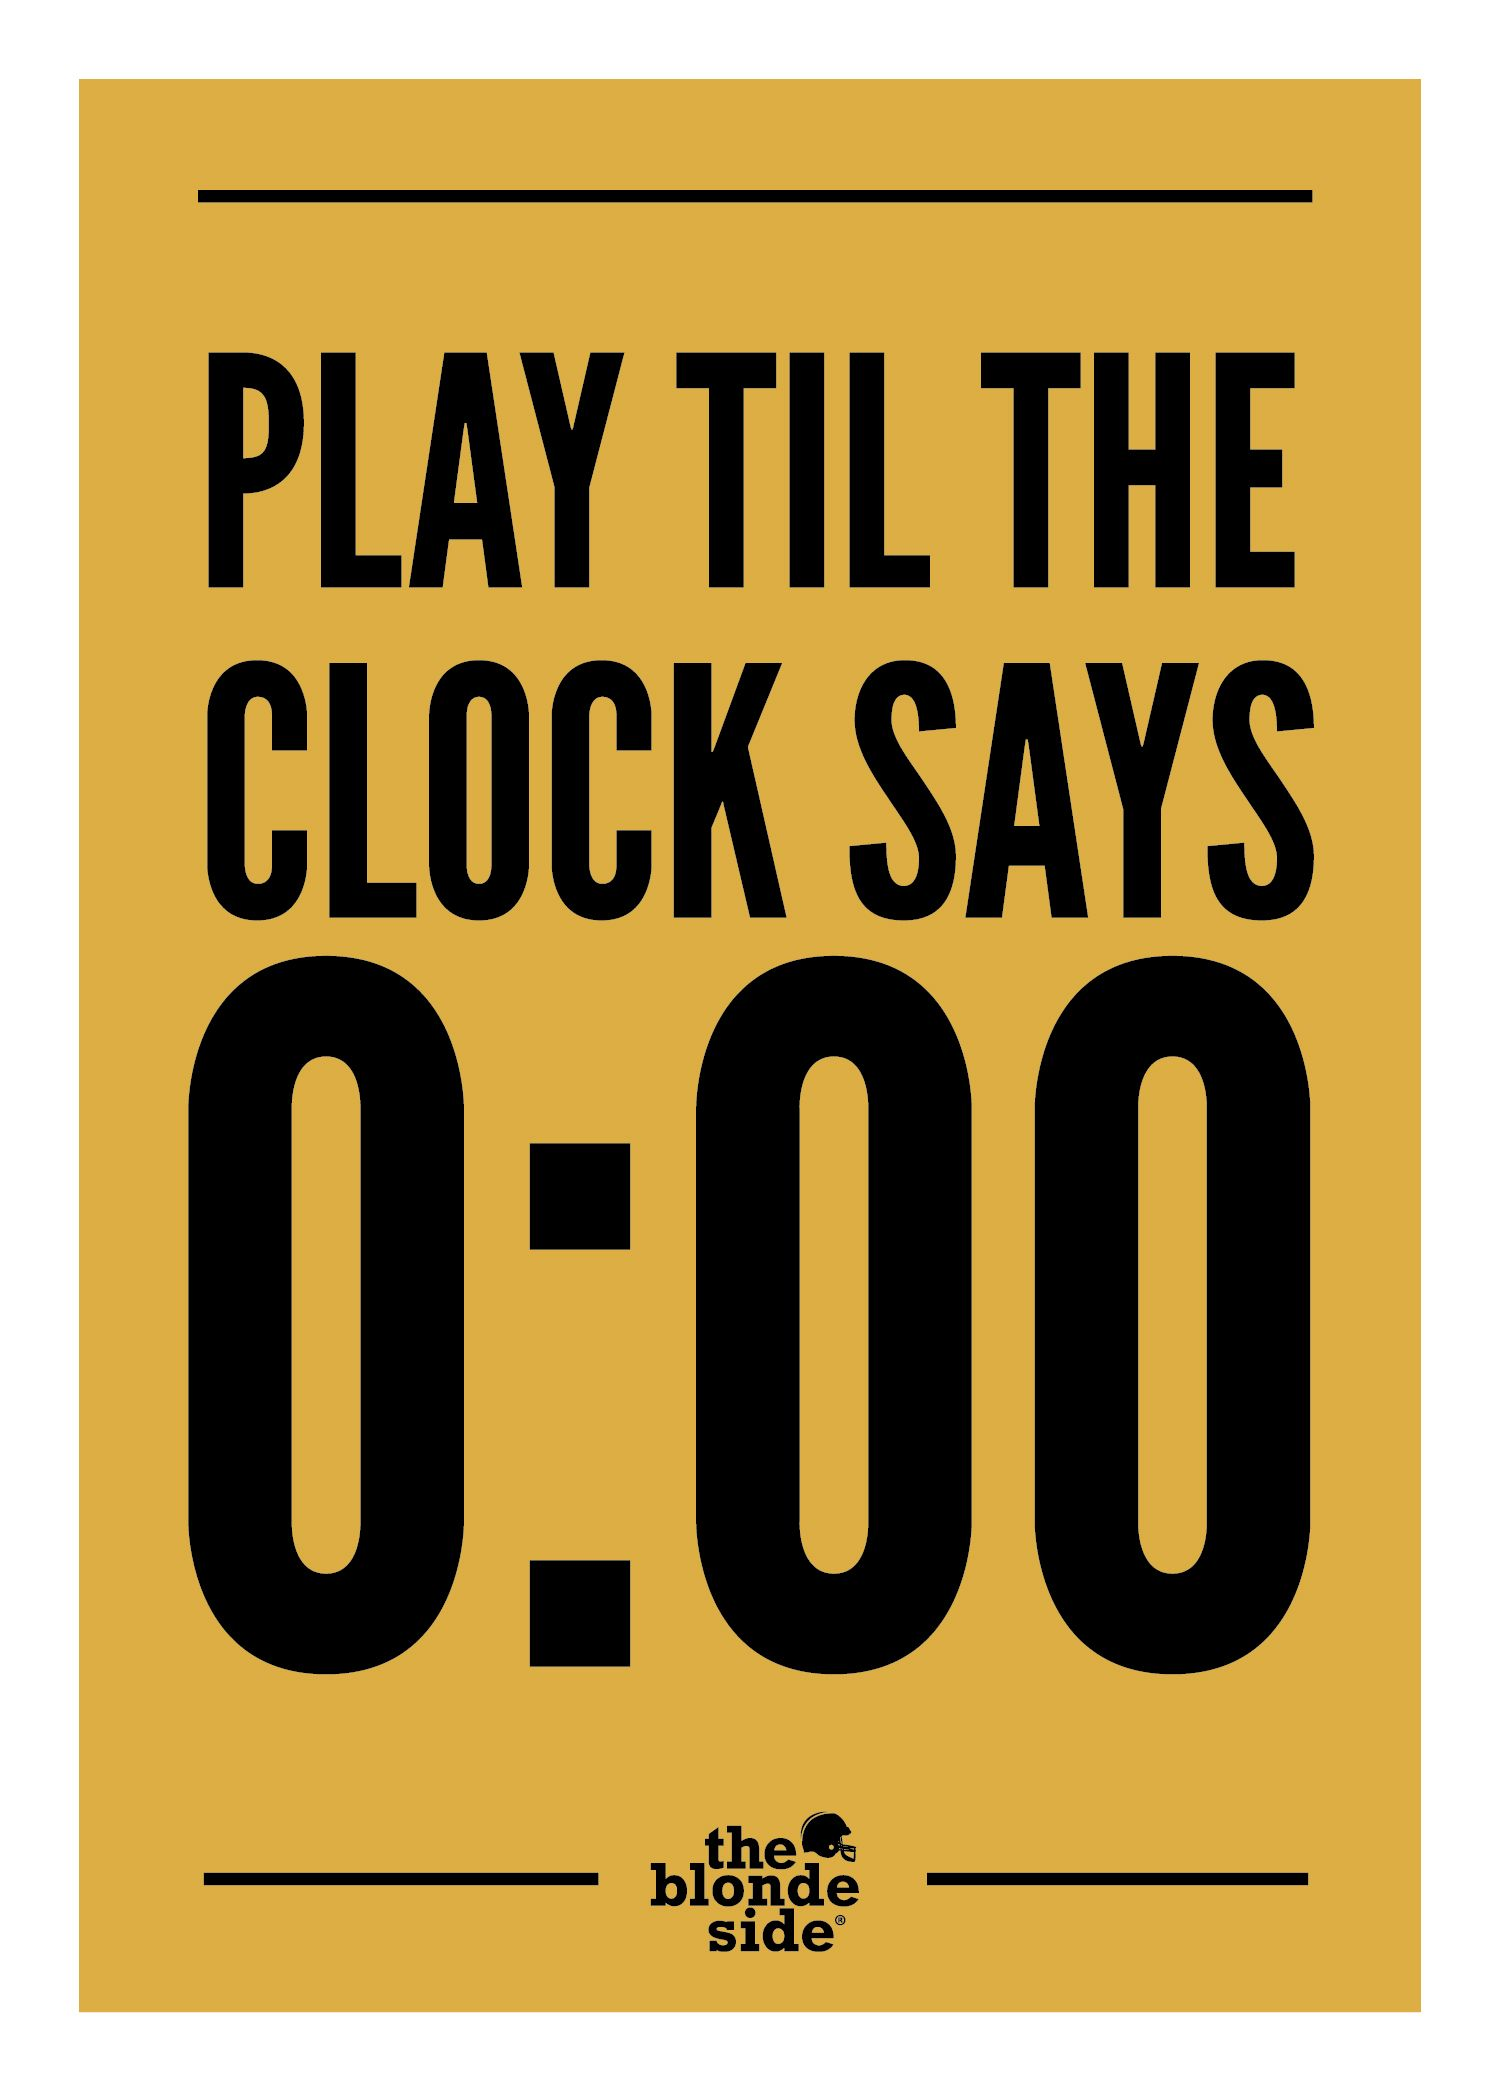 ALWAYS play til the clock says 000, sports quotes